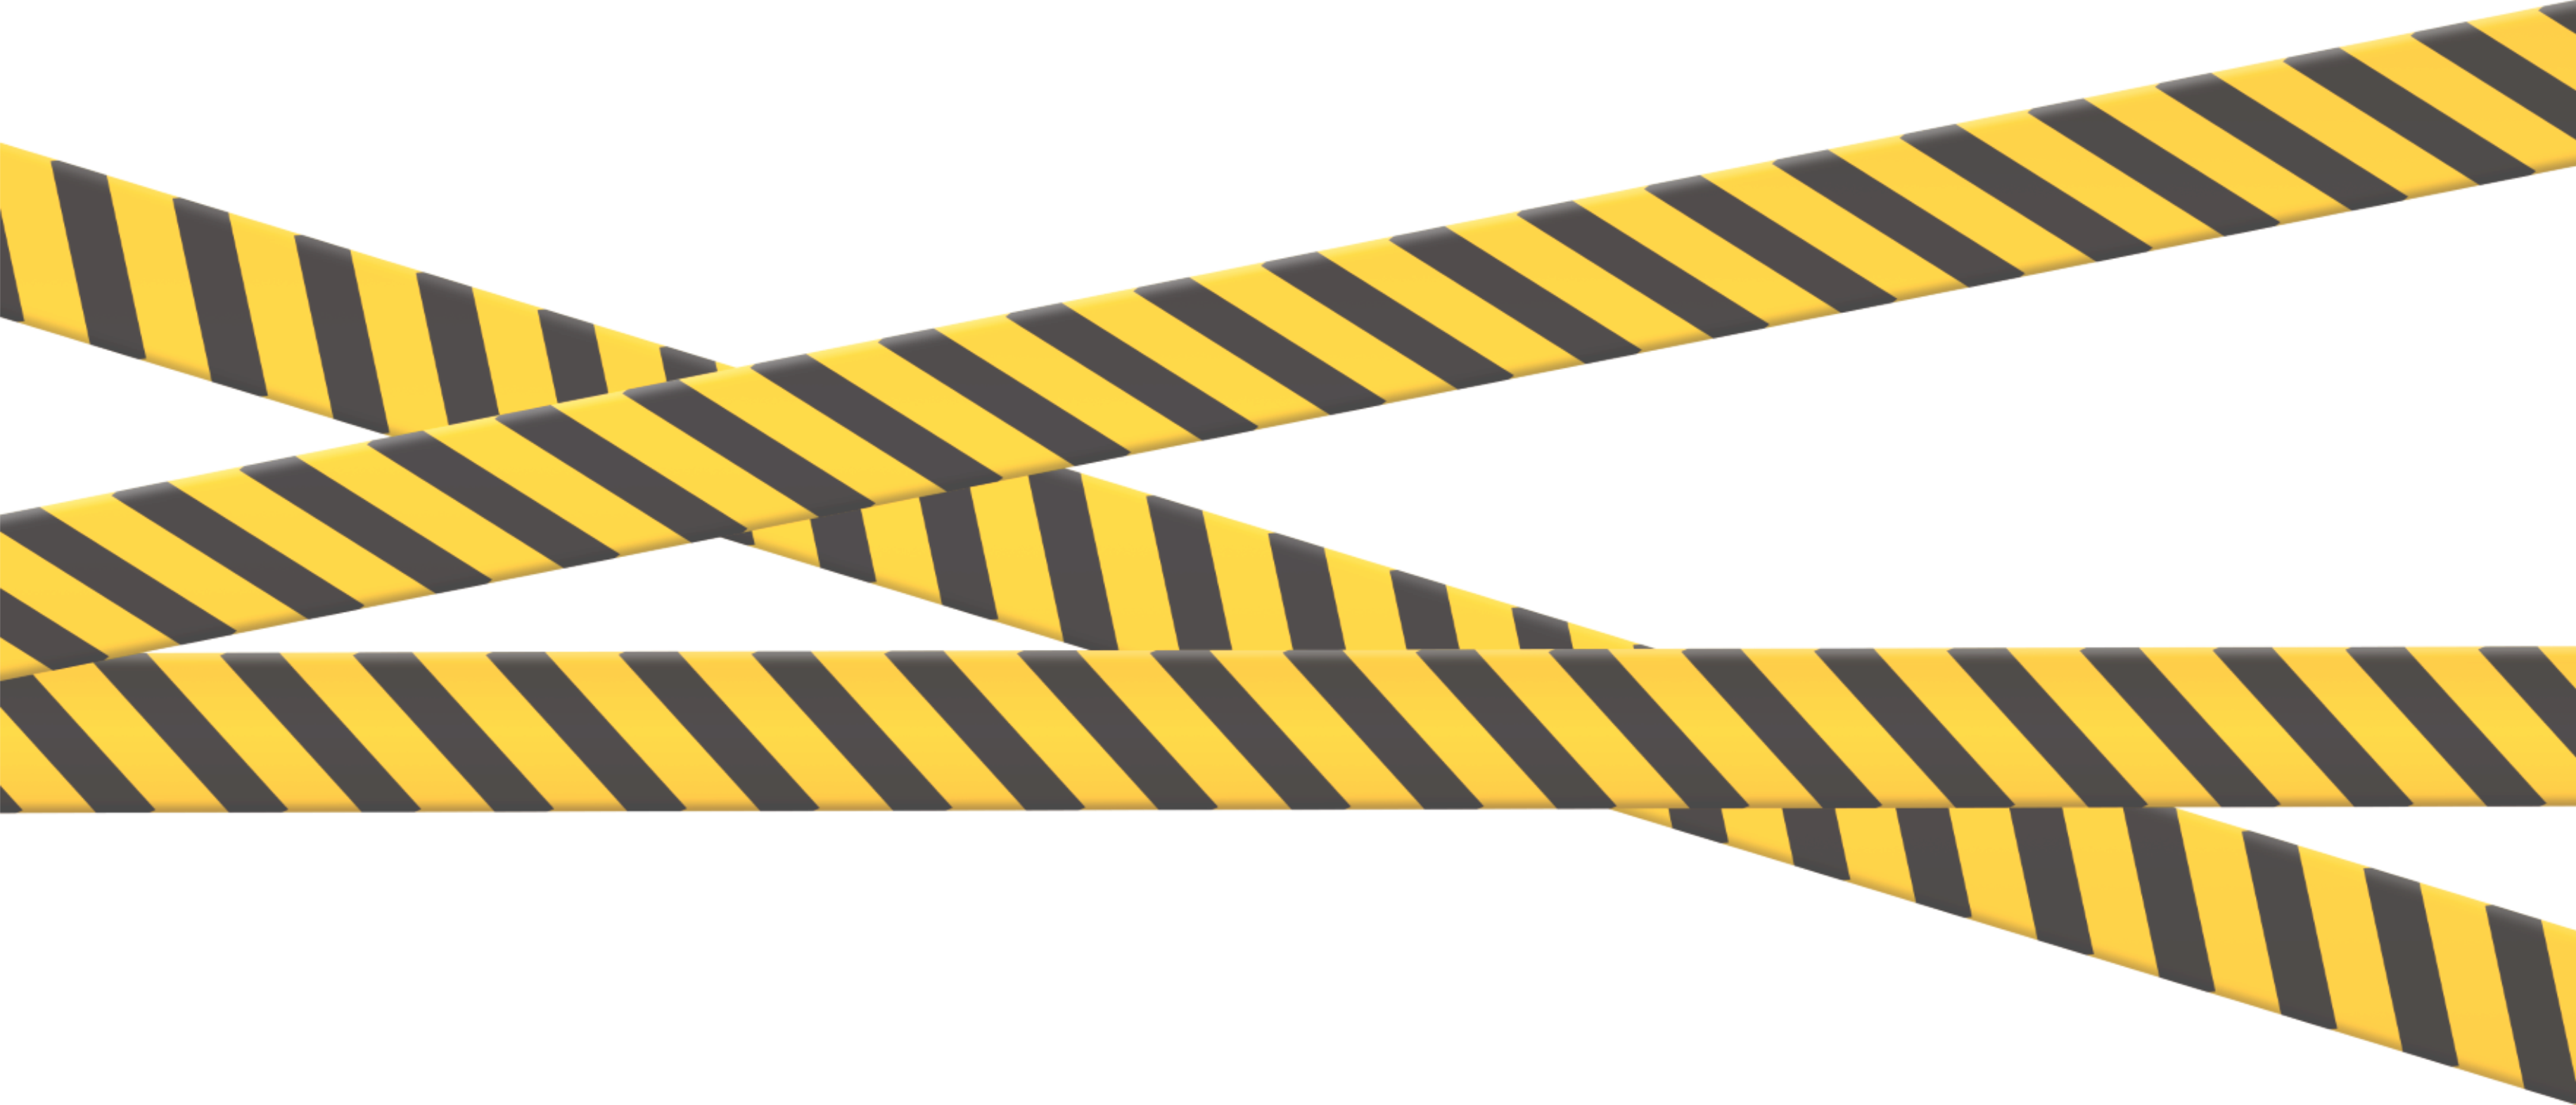 Construction tape png. Index of wp content